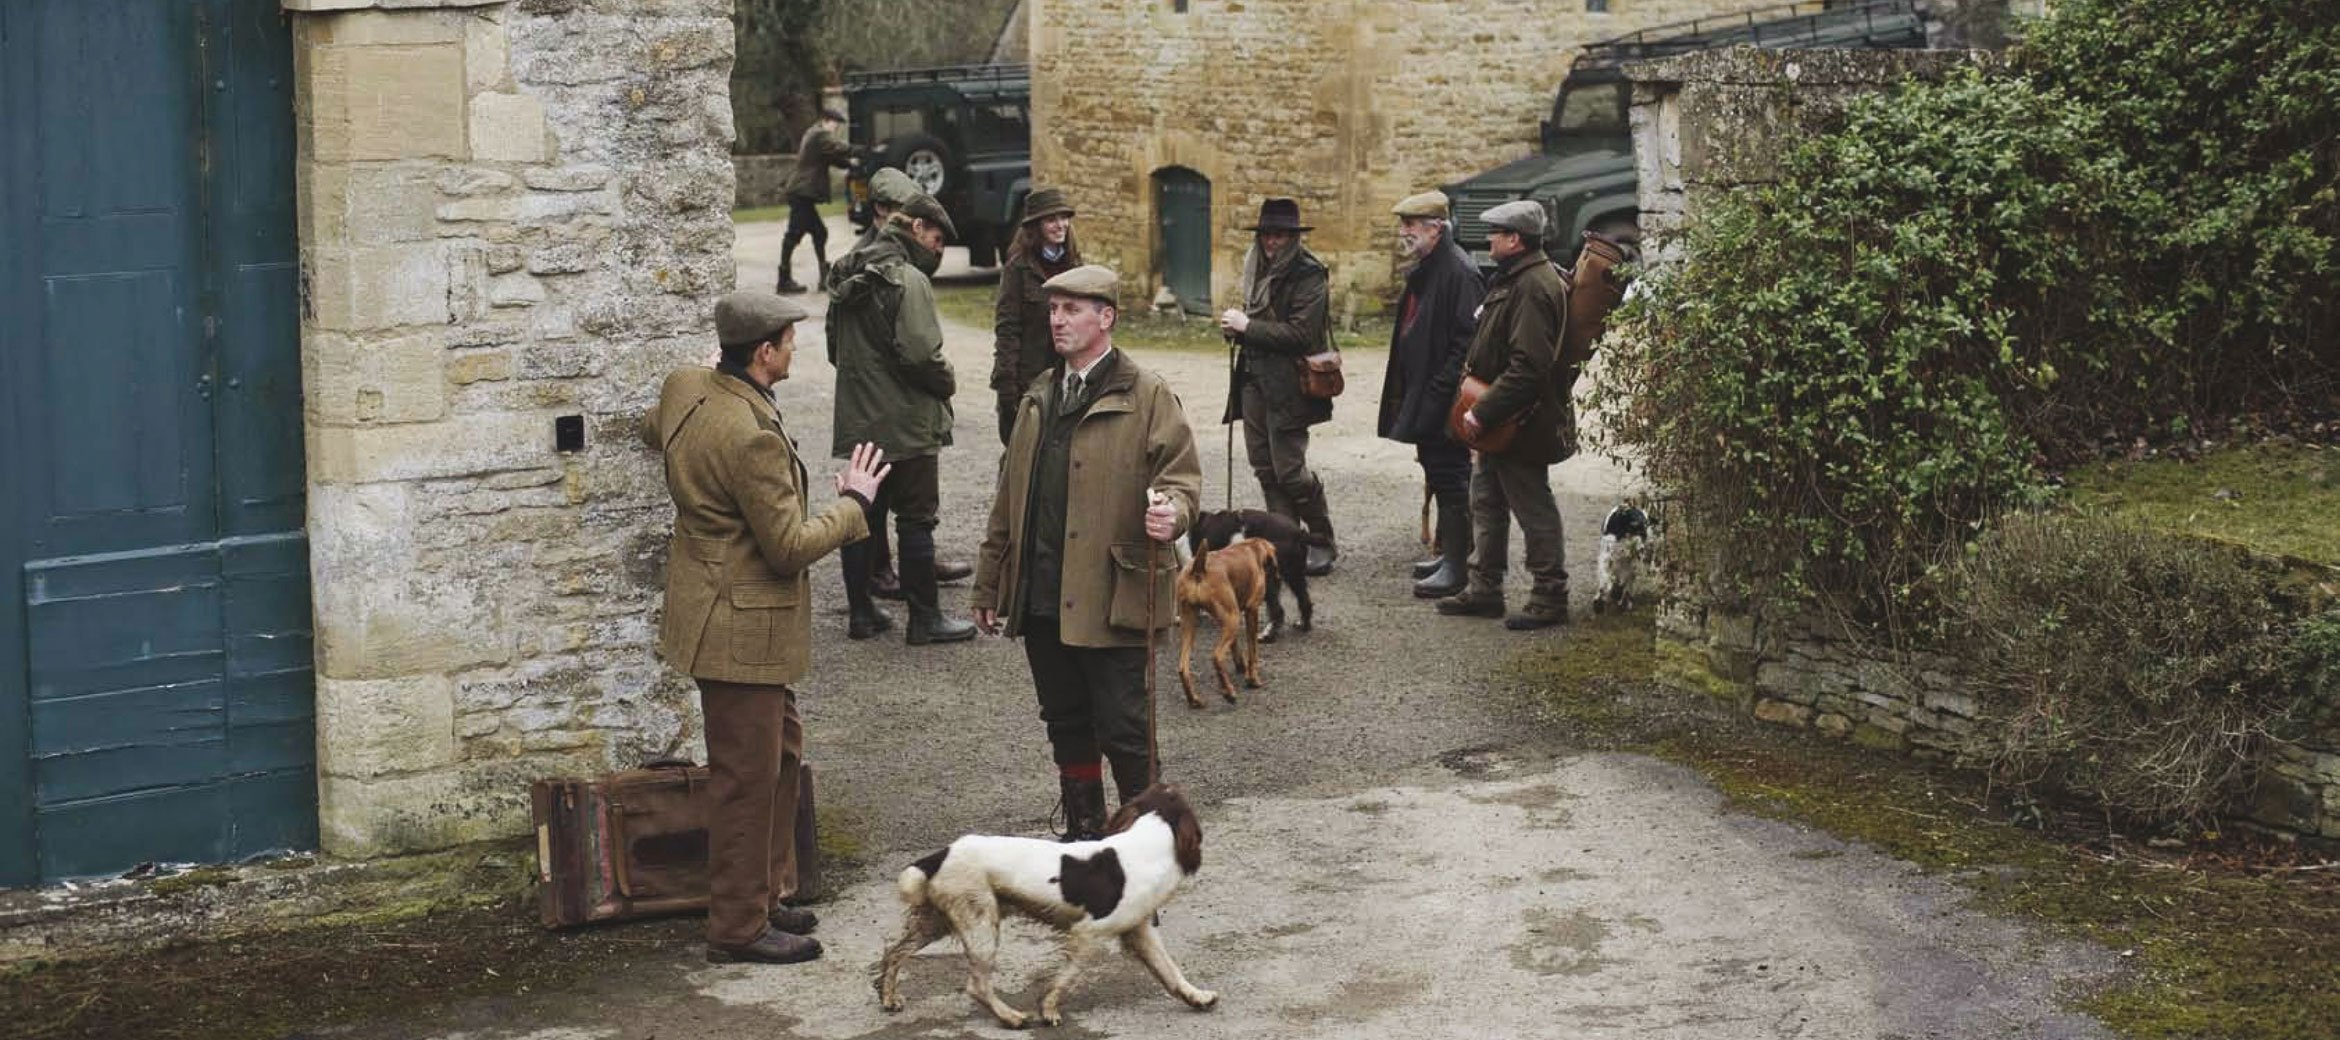 Purdey-game-shoot-cornwell-manor-yard